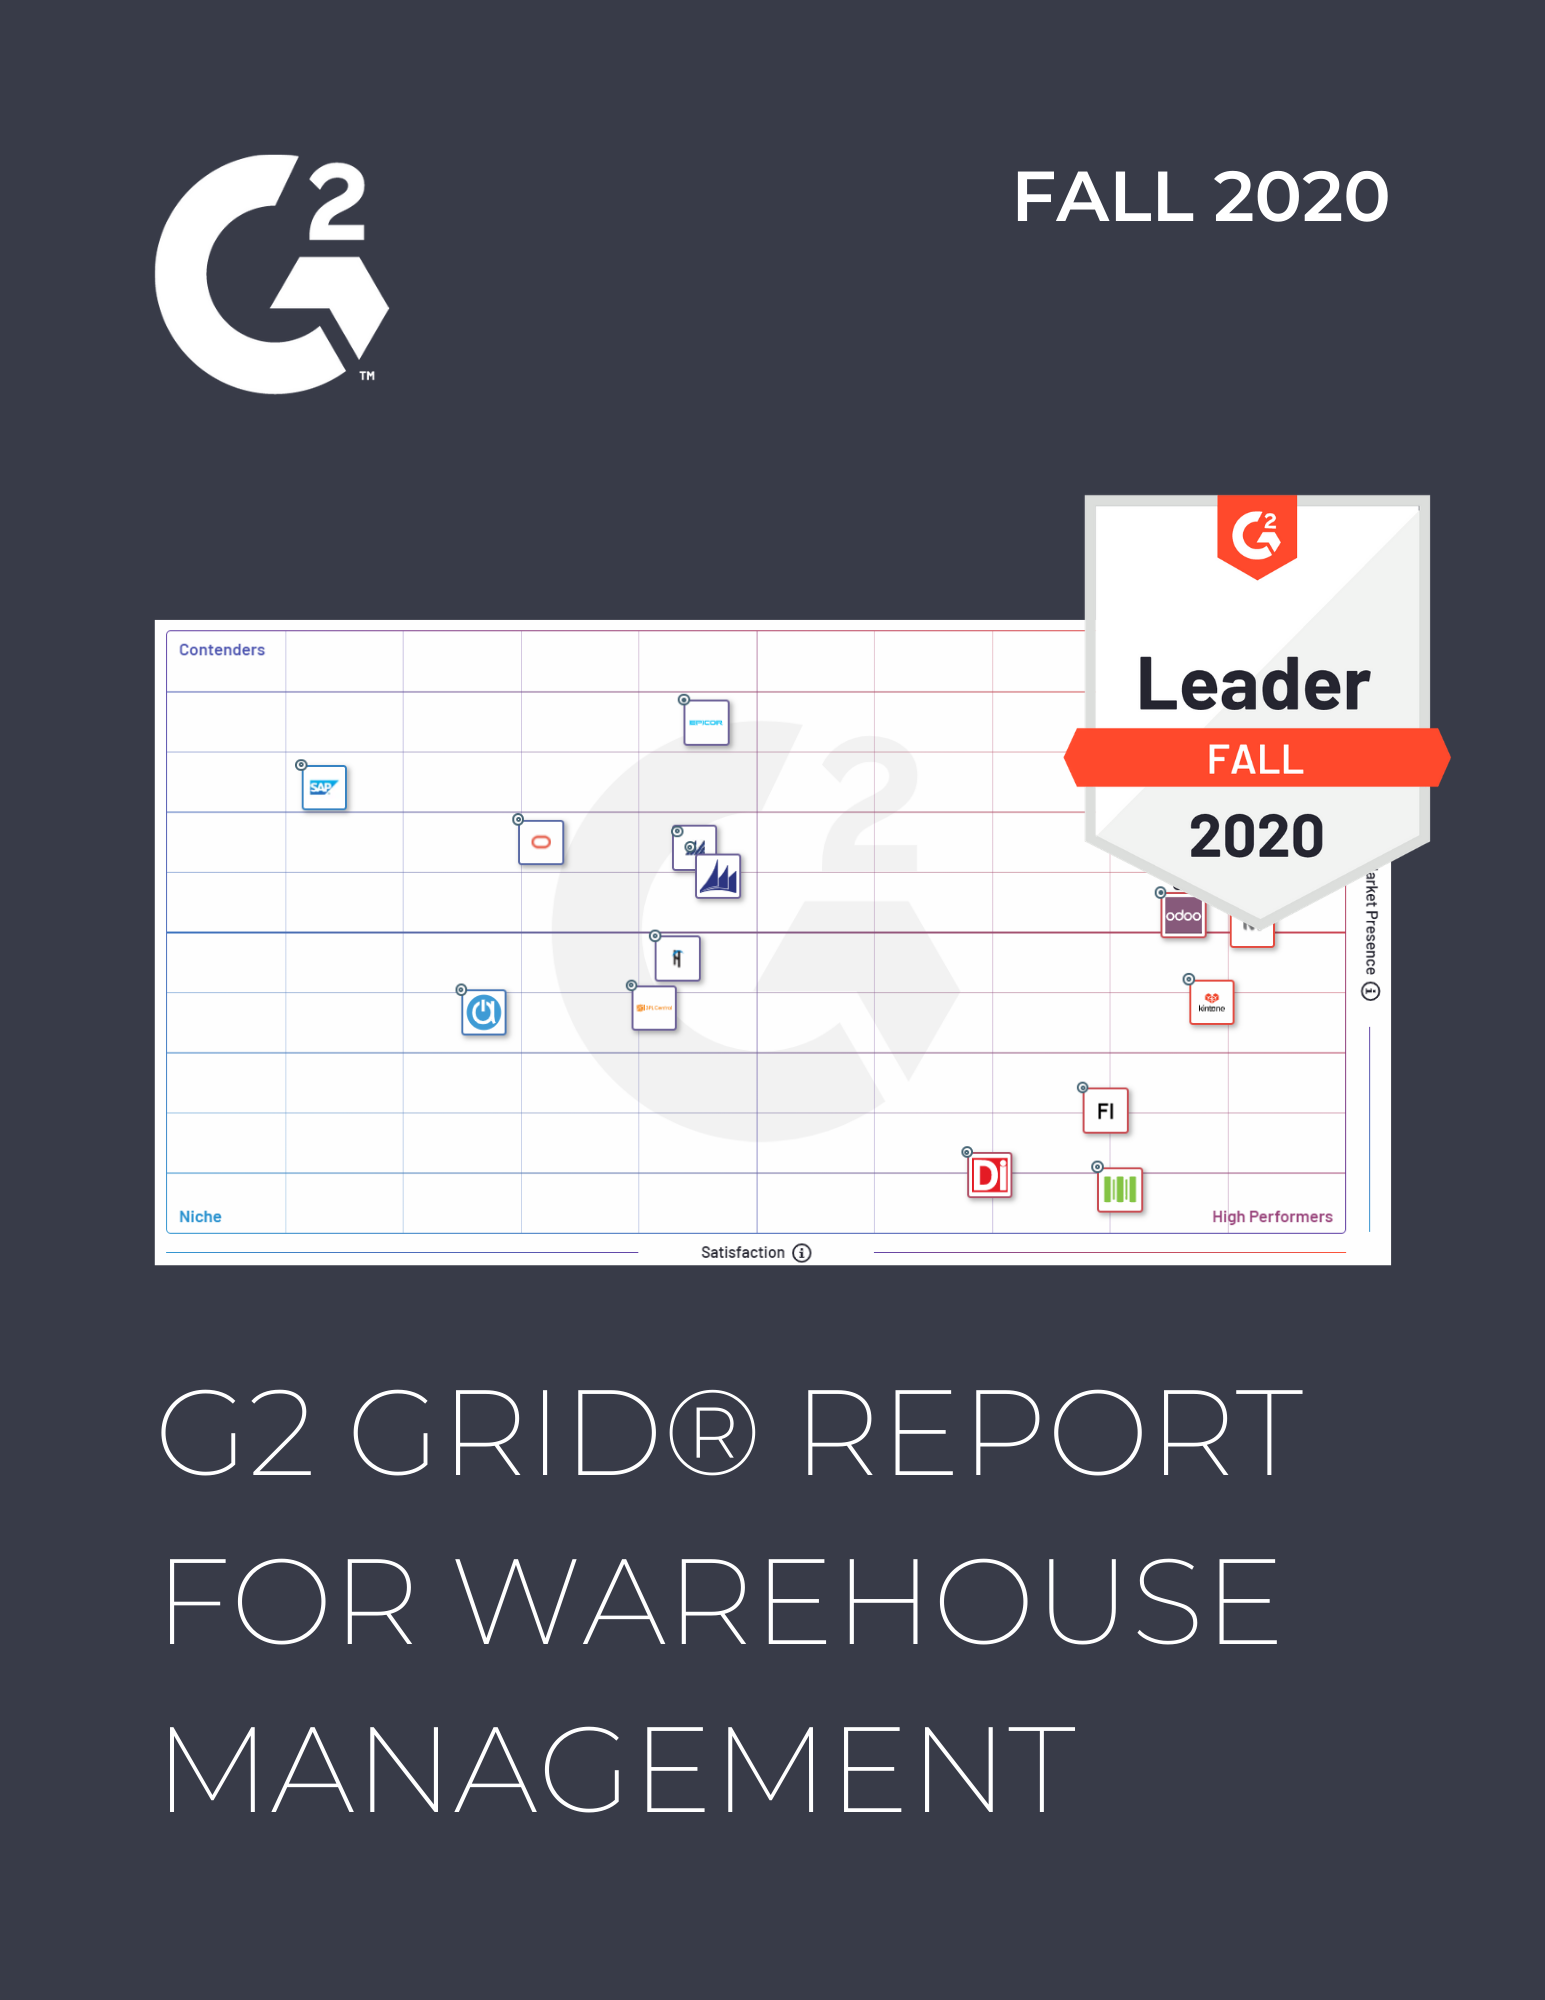 G2 WMS Leader Fall 2020 Cover Image - Warehouse Management